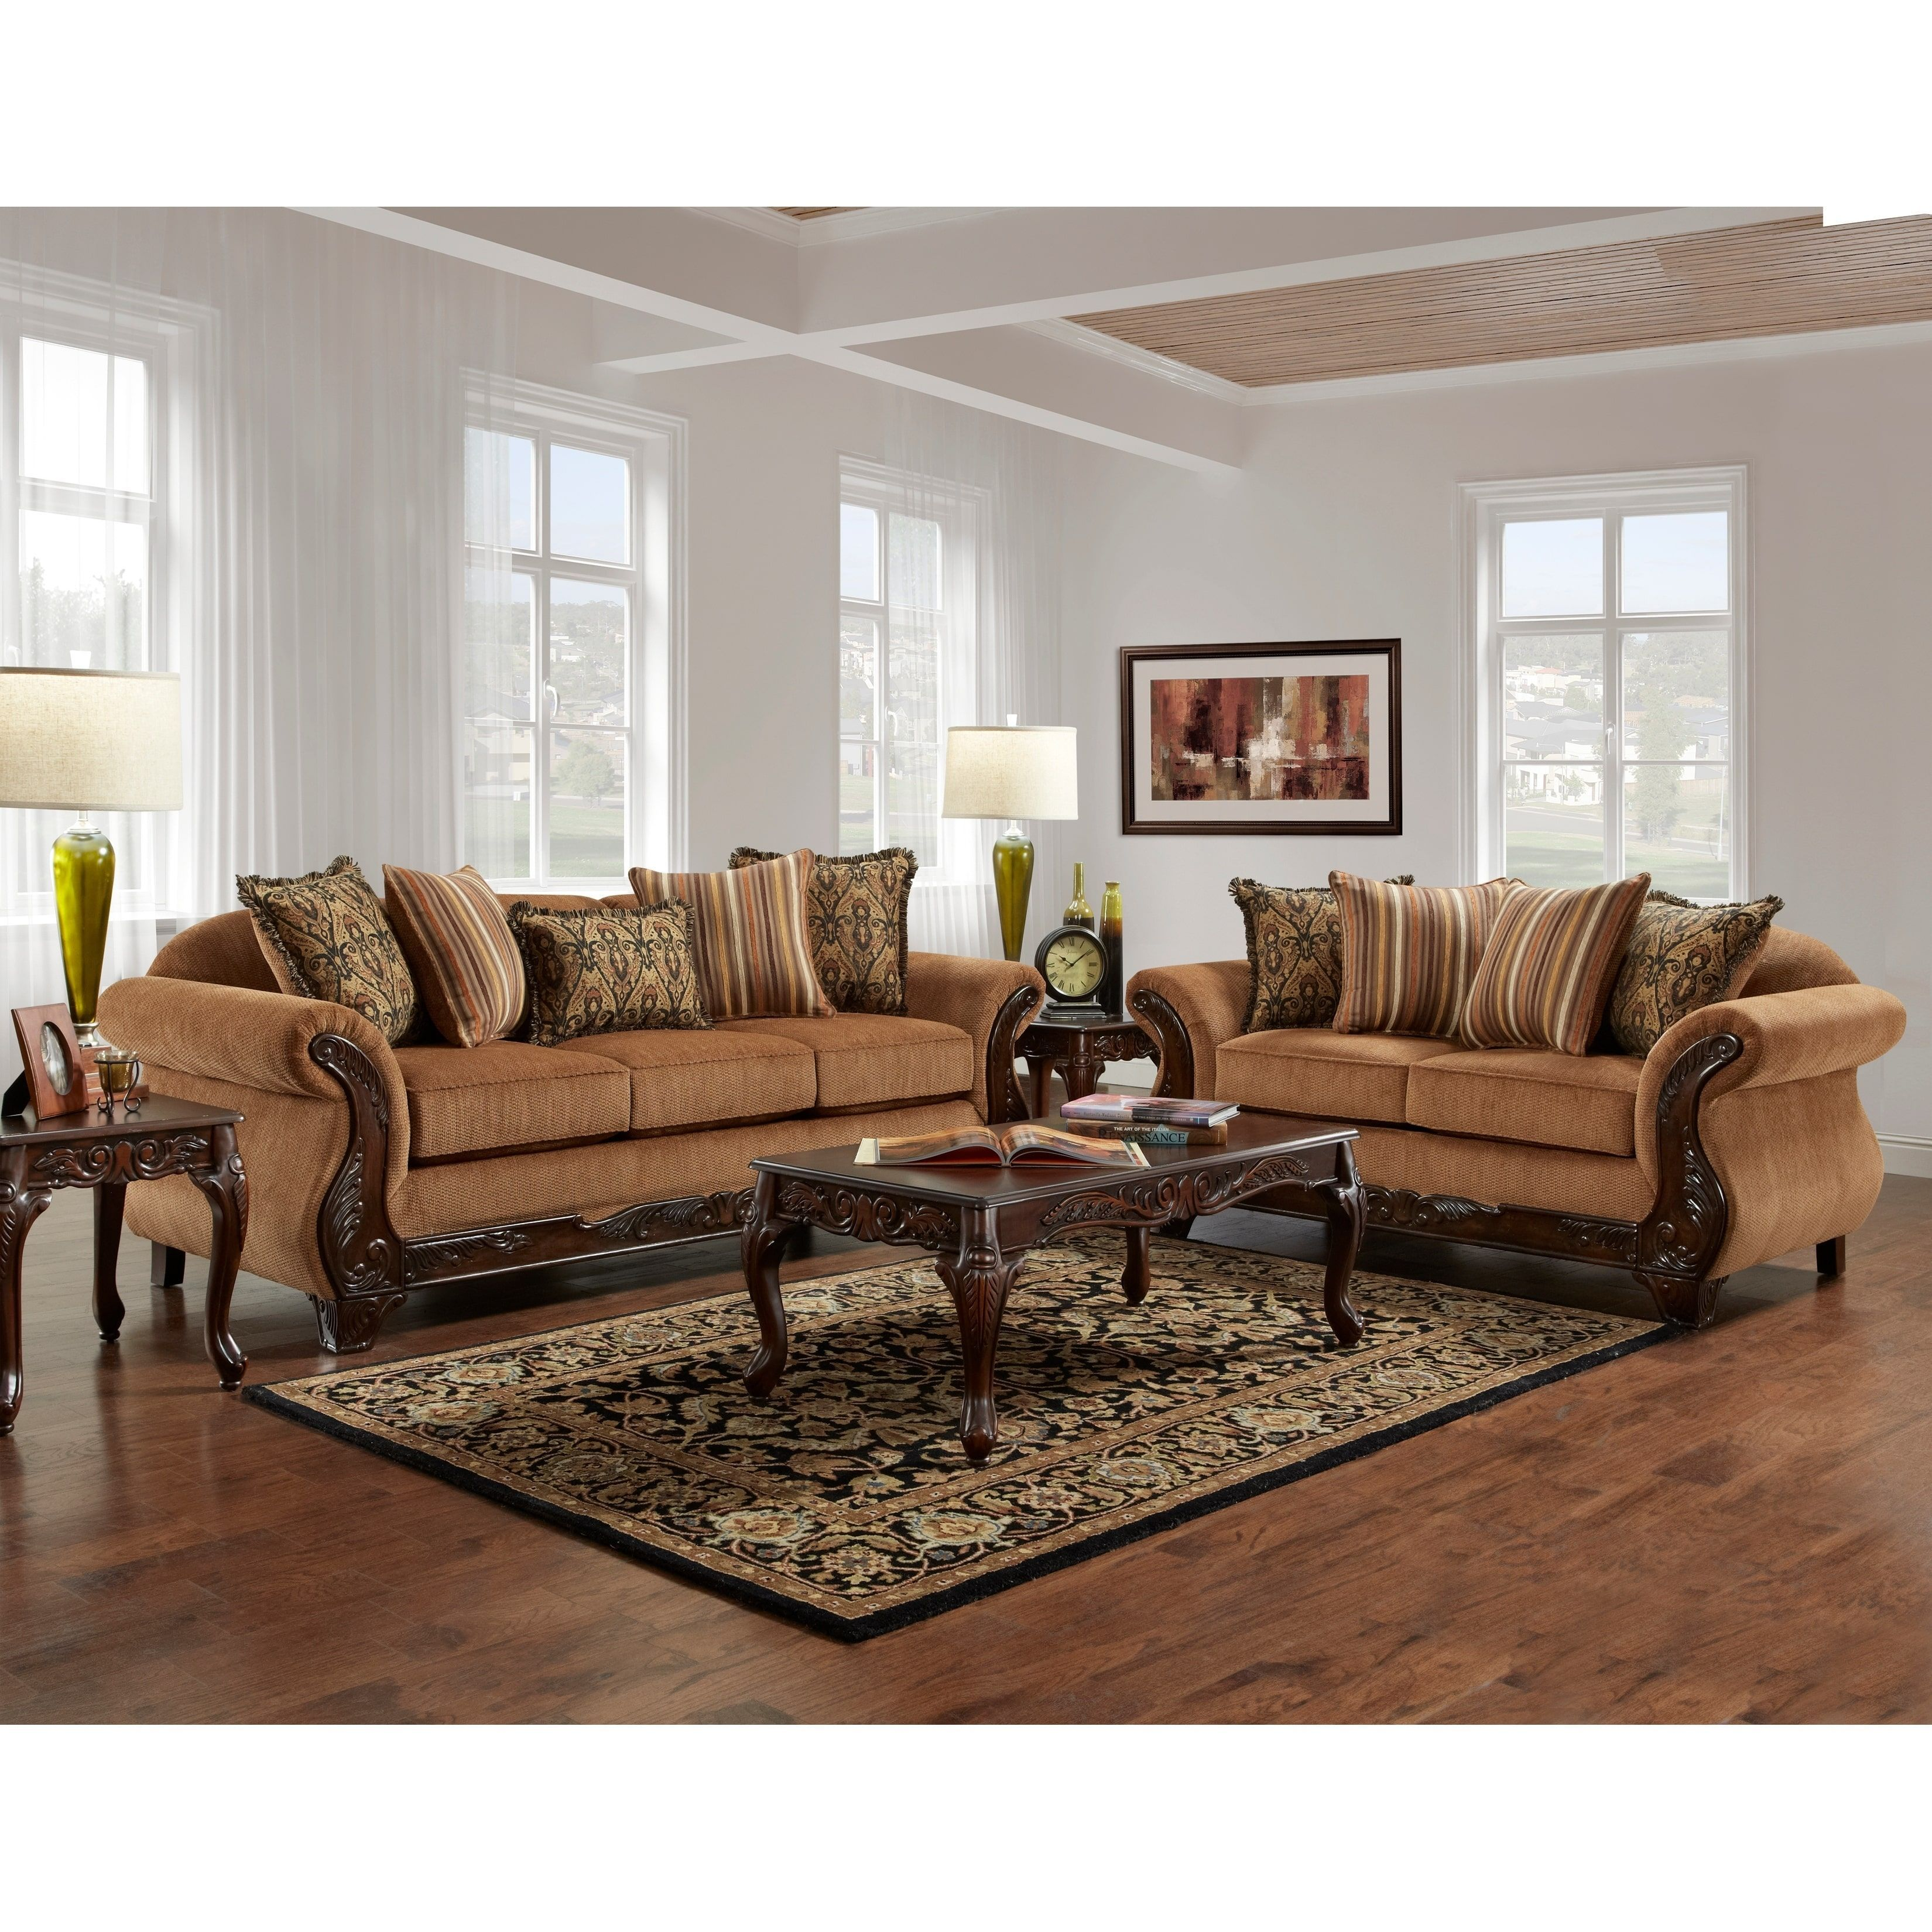 Sofa Trendz Barnes 2pc Sofa And Loveseat Brown Chenille